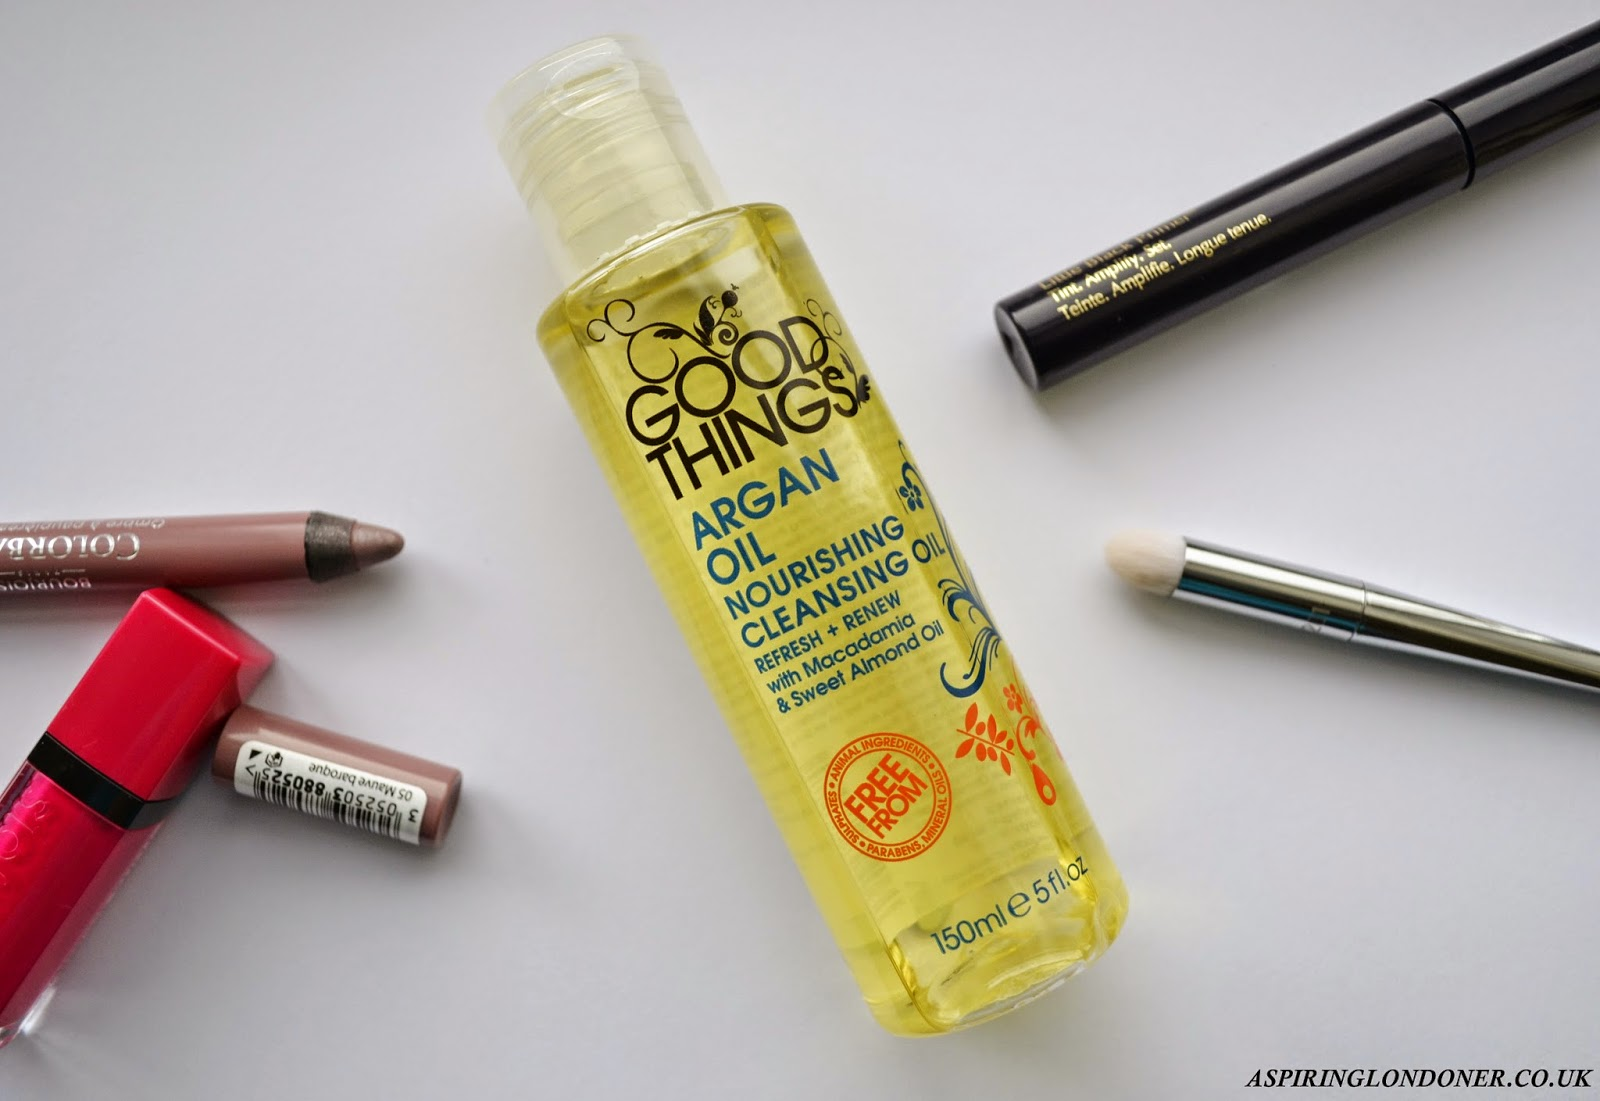 Budget Buy | Good Things Argan Oil Nourishing Cleansing Oil Review - Aspiring Londoner